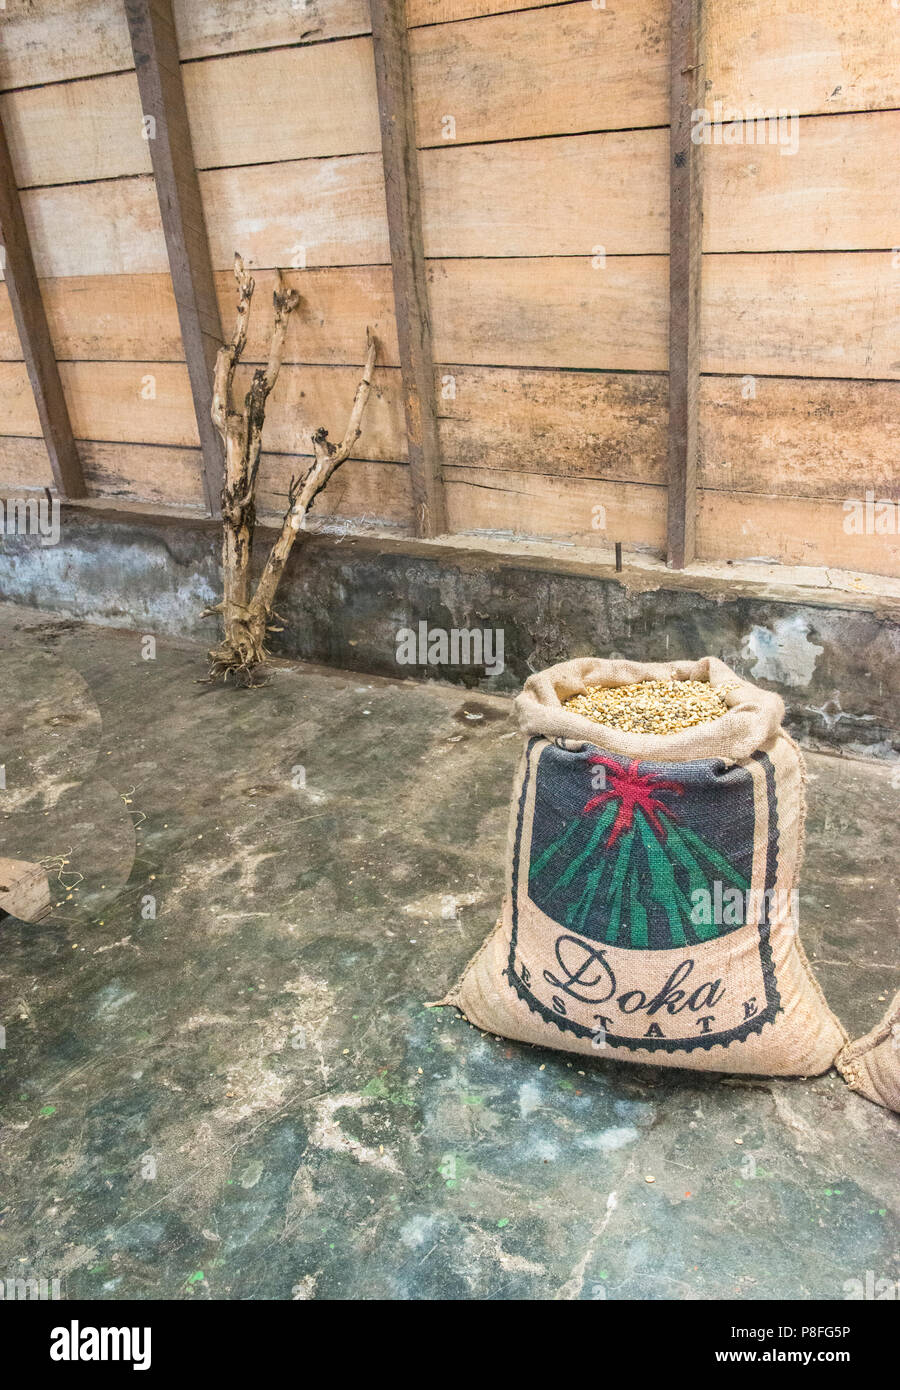 Doka Coffee Plantation Coffee Bag ready for sale and delivery.It is sitting in the wooden warehouse with a branch adding an artistic touch to the pic. - Stock Image